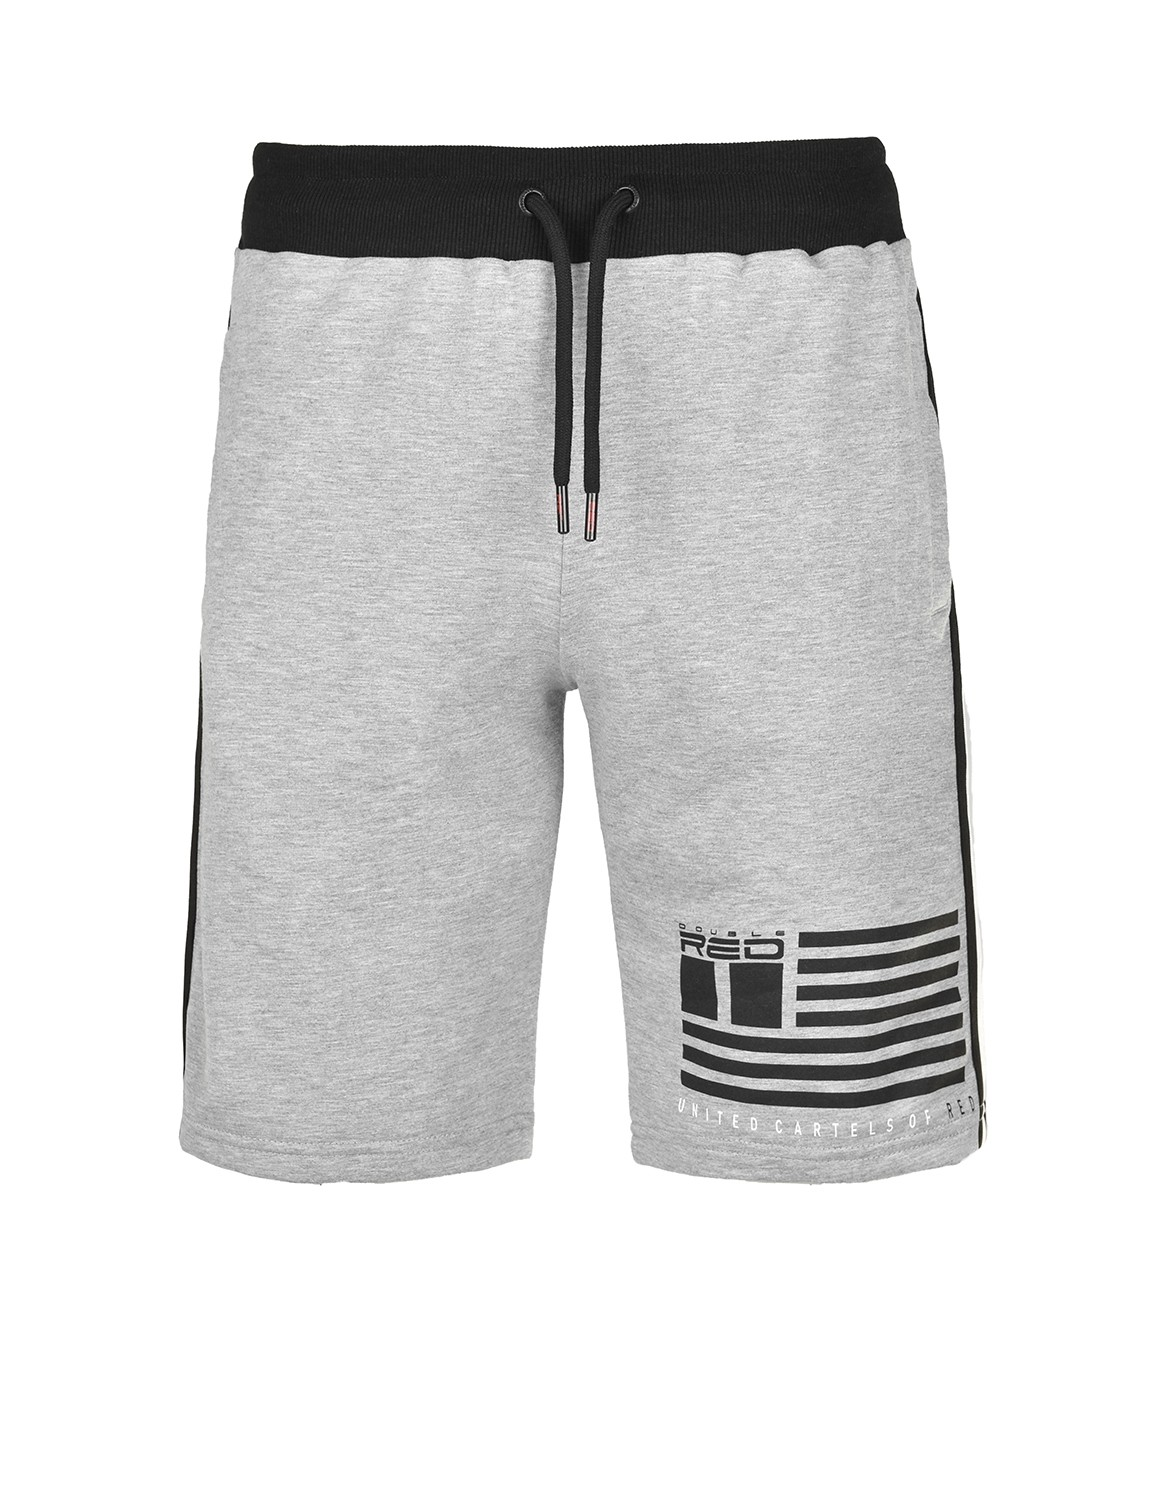 UTTER Shorts Light Grey